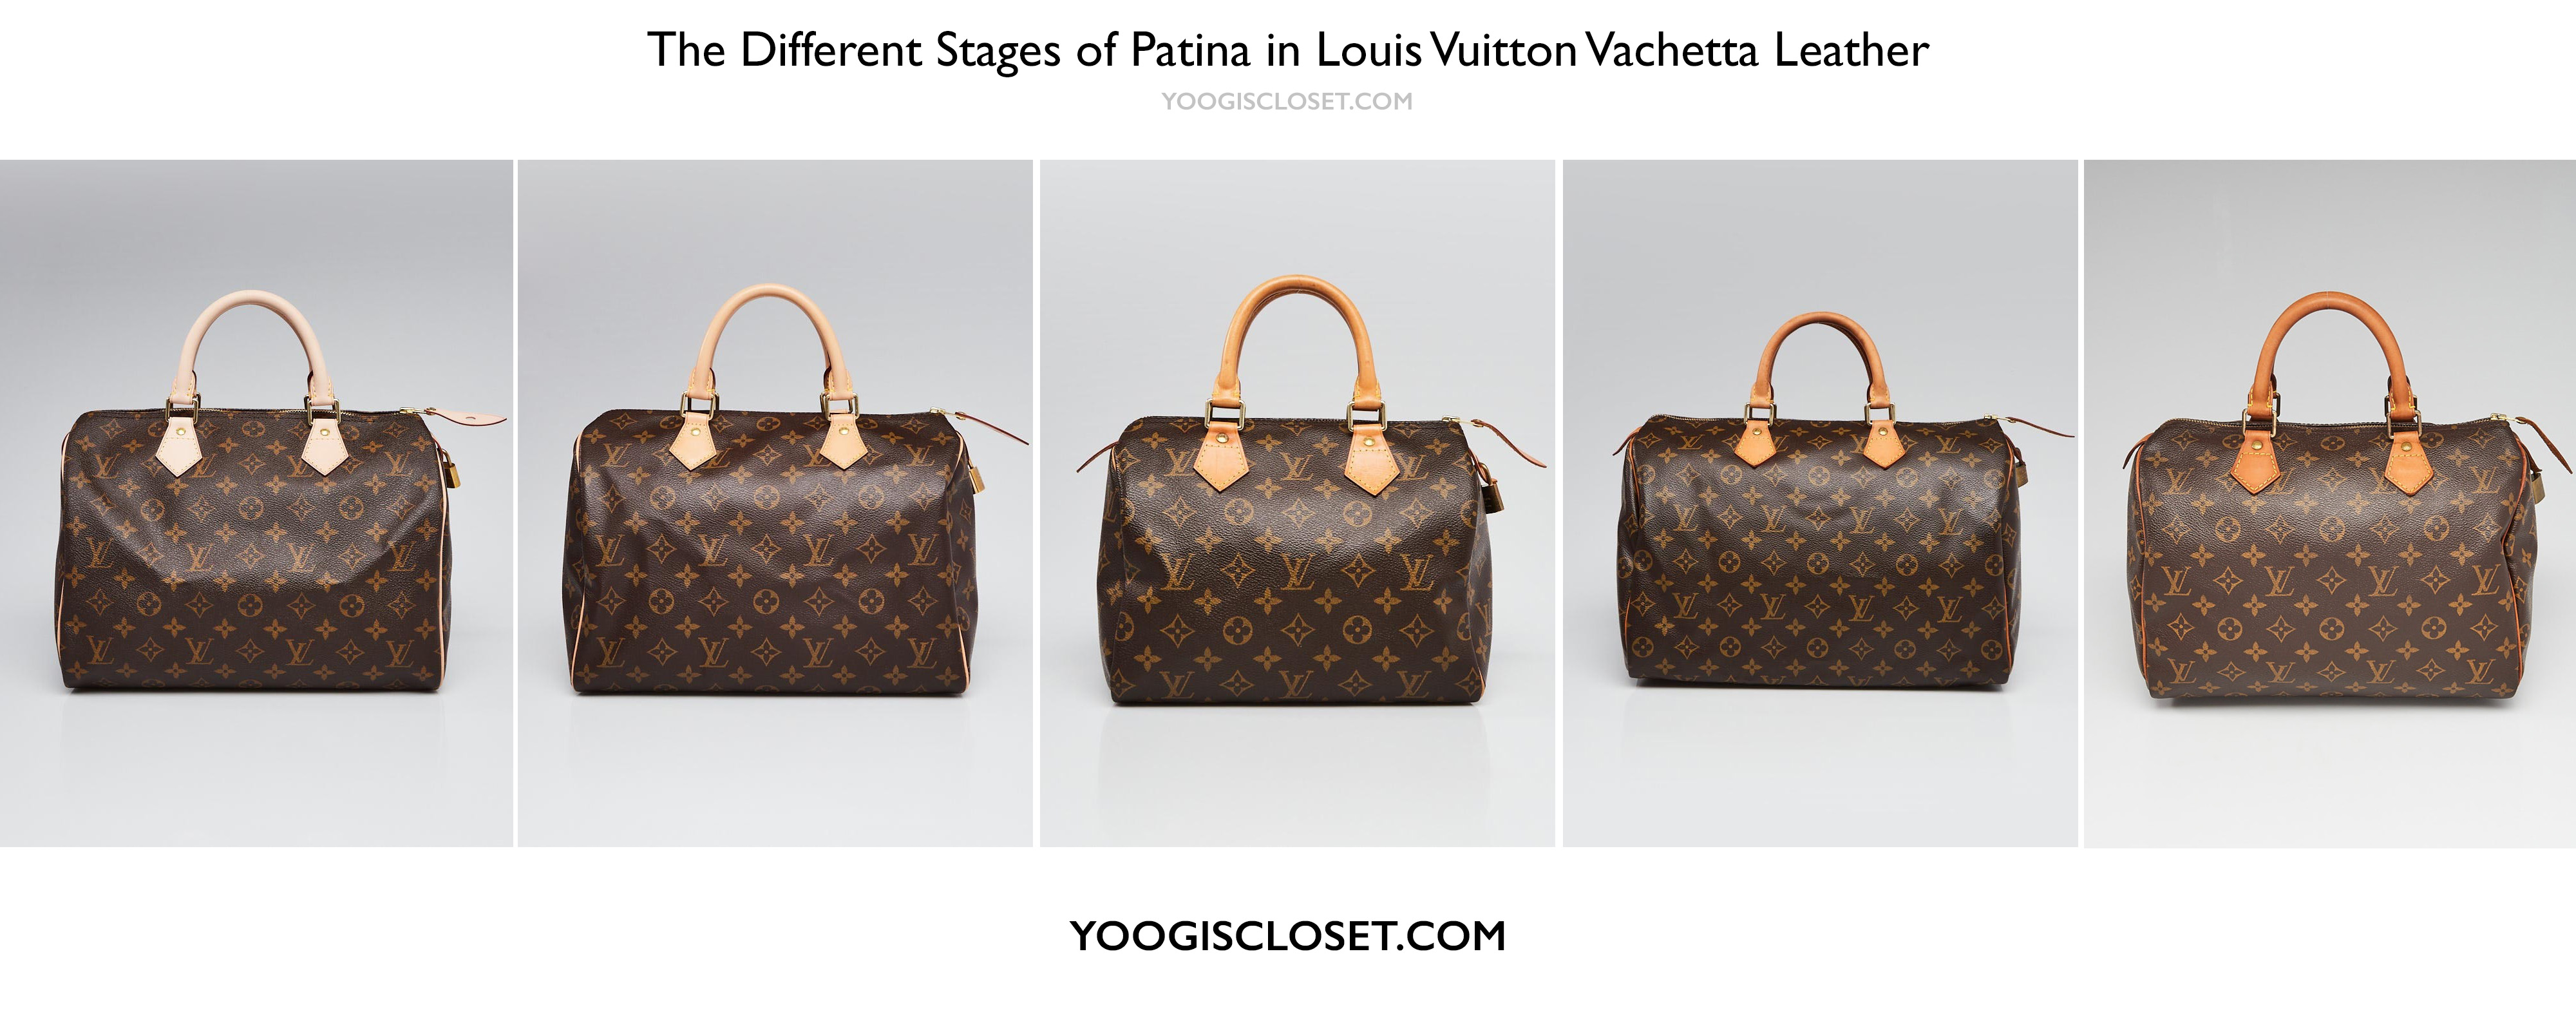 Louis Vuitton Vachetta Leather Patina Stages | YoogisCloset.com